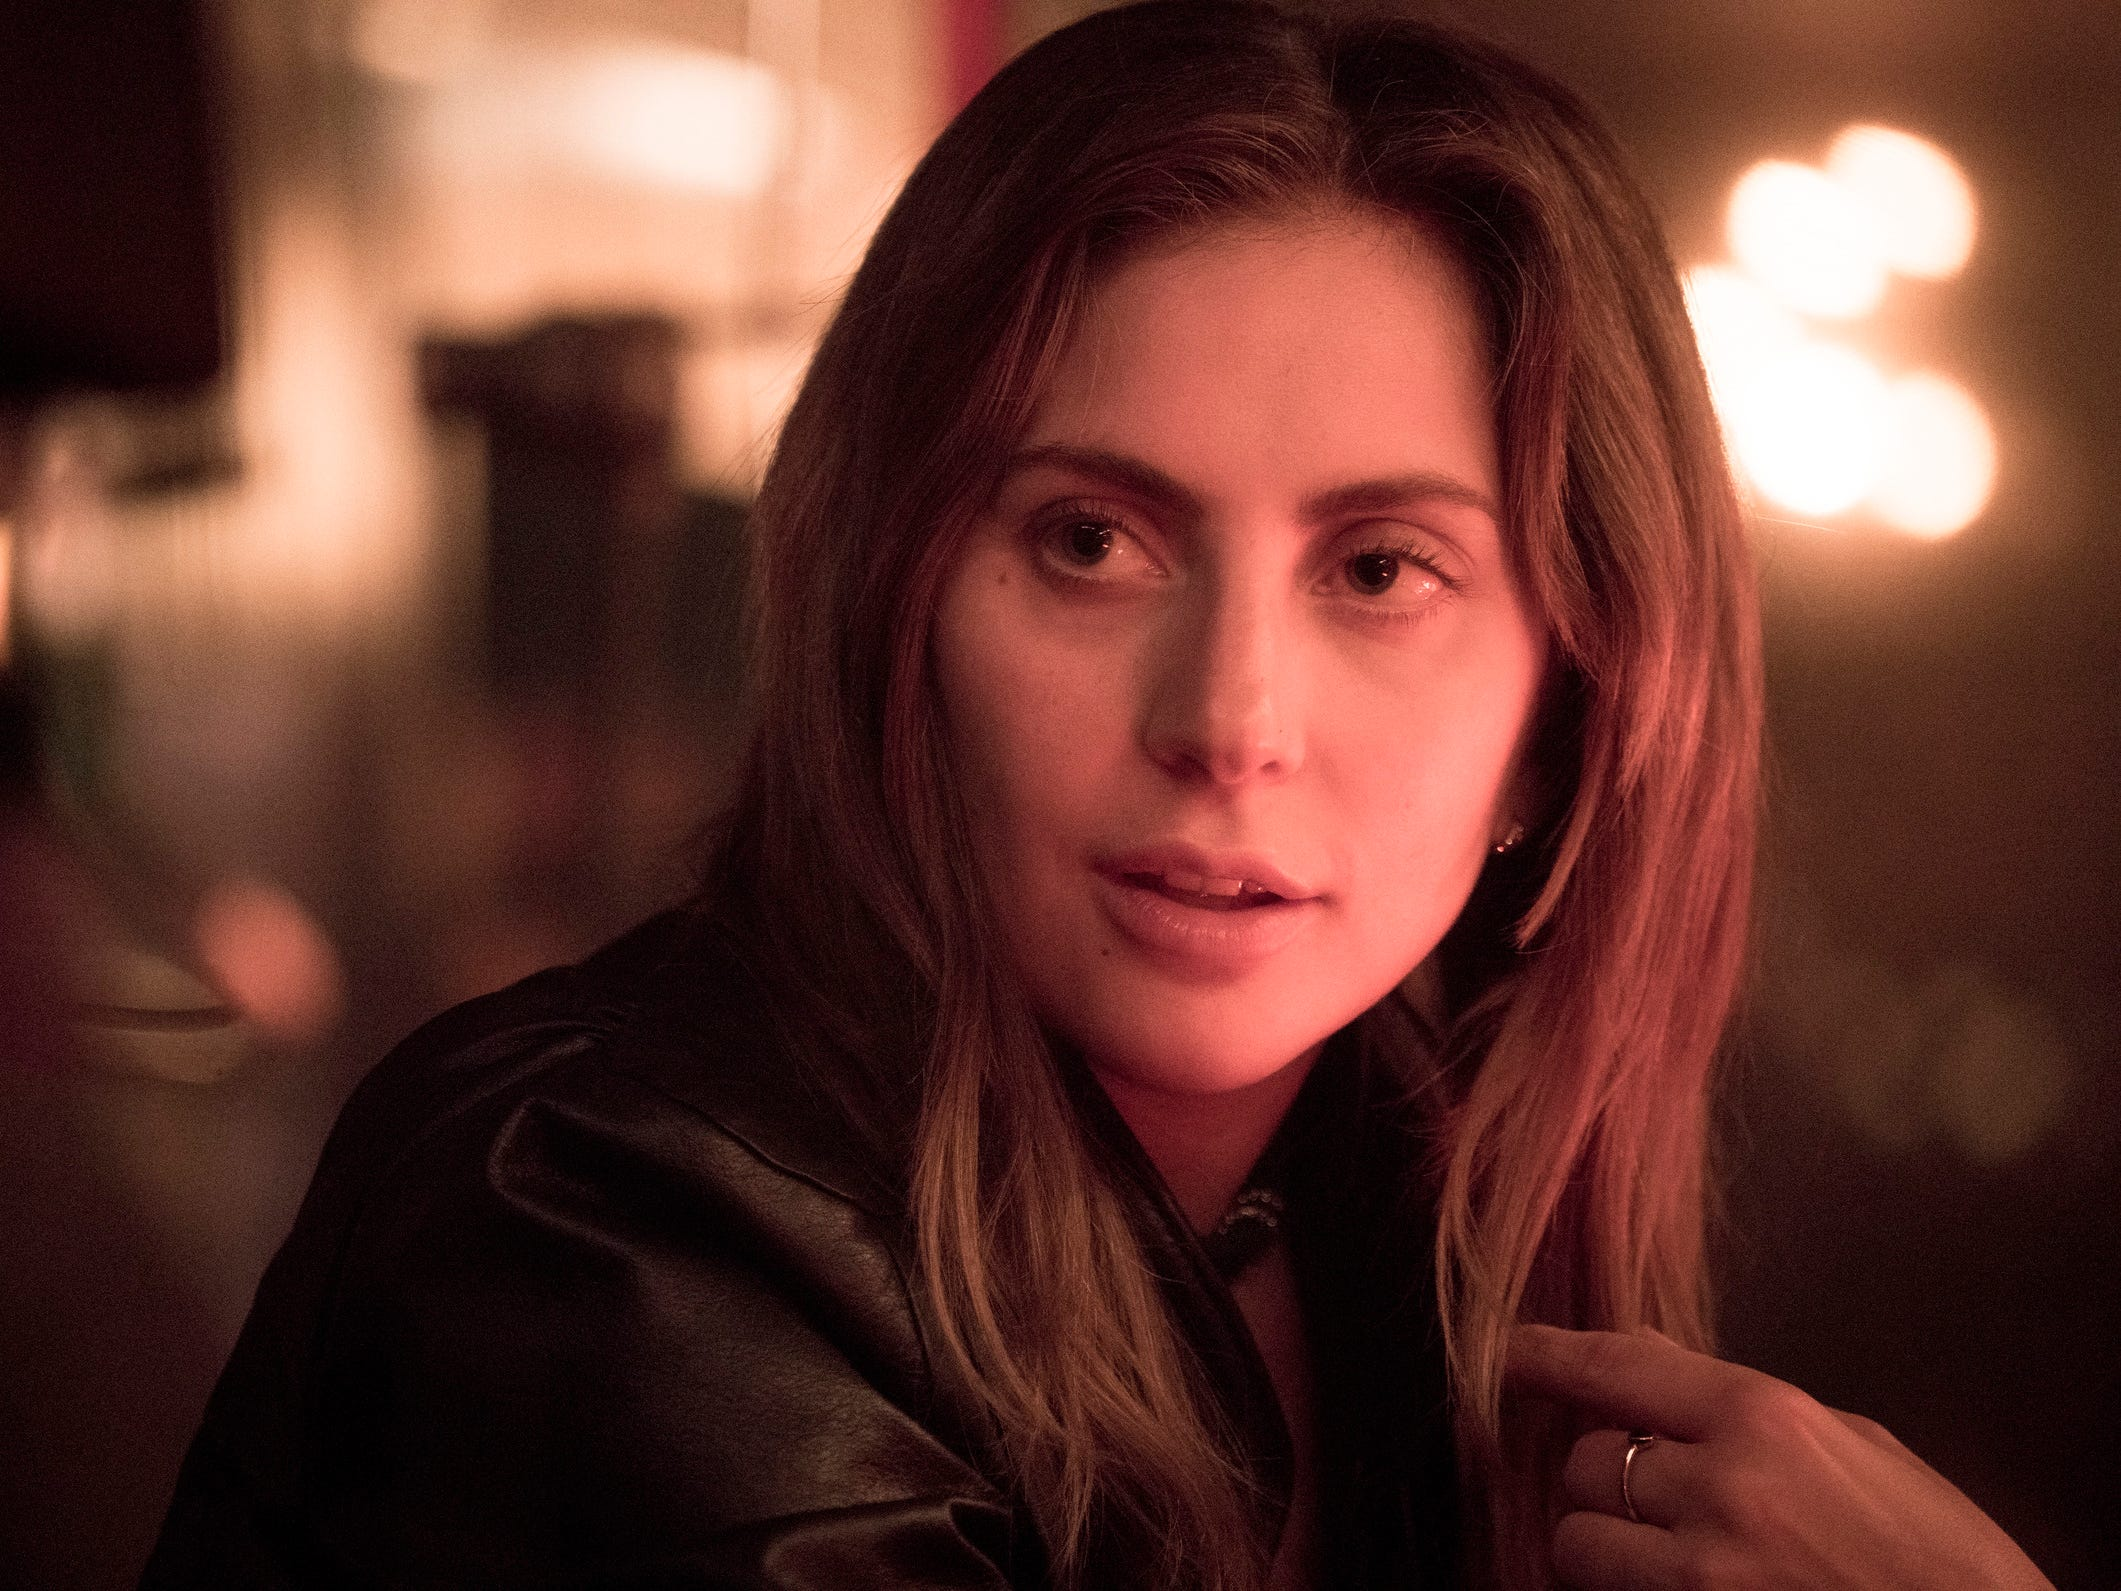 "This image released by Warner Bros. shows Lady Gaga in a scene from the latest reboot of the film, ""A Star is Born."" On Thursday, Dec. 6, 2018, Lady Gaga was nominated for a Golden Globe award for lead actress in a motion picture drama for her role in the film. The 76th Golden Globe Awards will be held on Sunday, Jan. 6.  (Clay Enos/Warner Bros. via AP) ORG XMIT: NYET824"